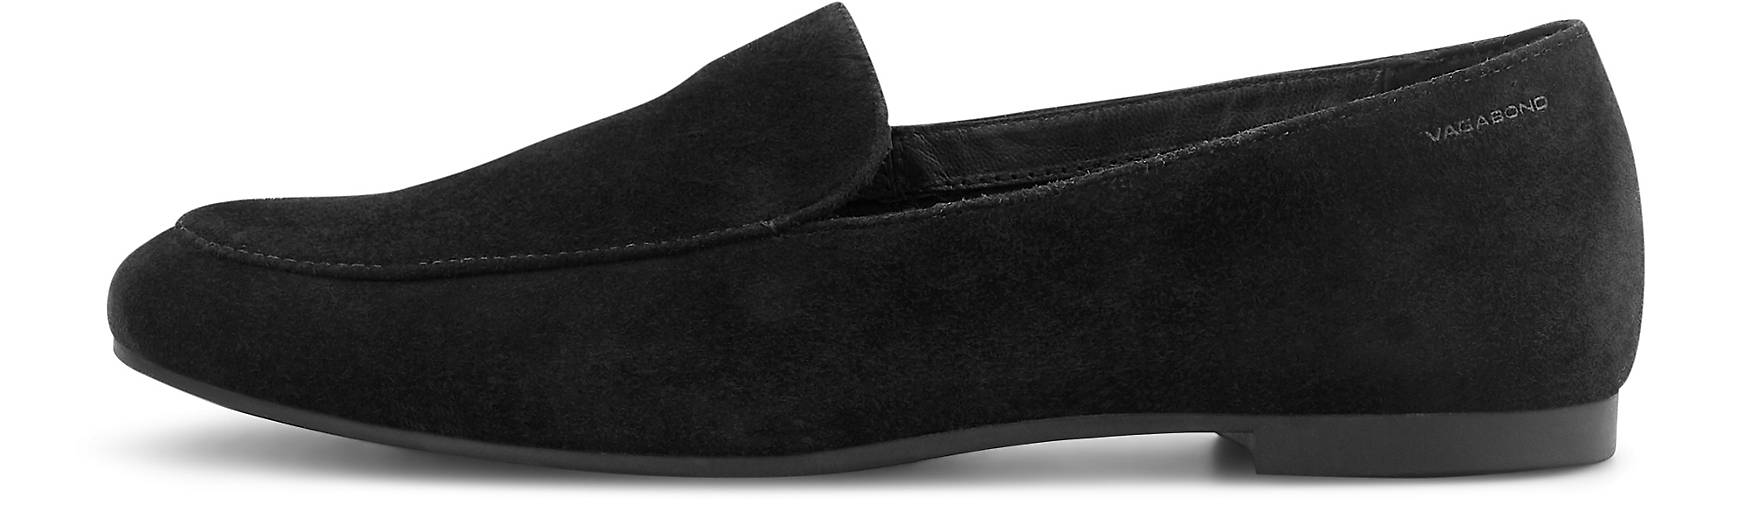 Vagabond Velours-Loafer ELIZA